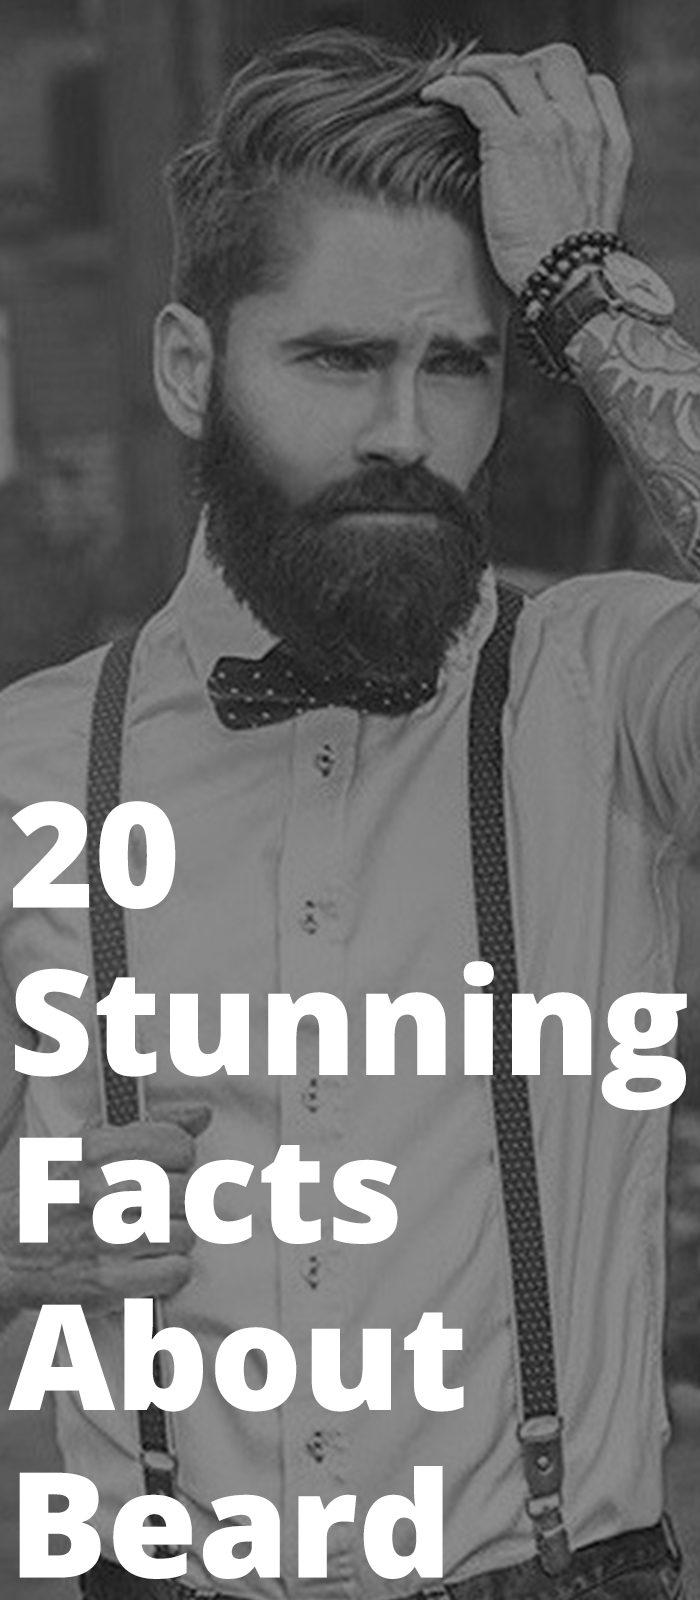 20 Stunning Facts About Beard